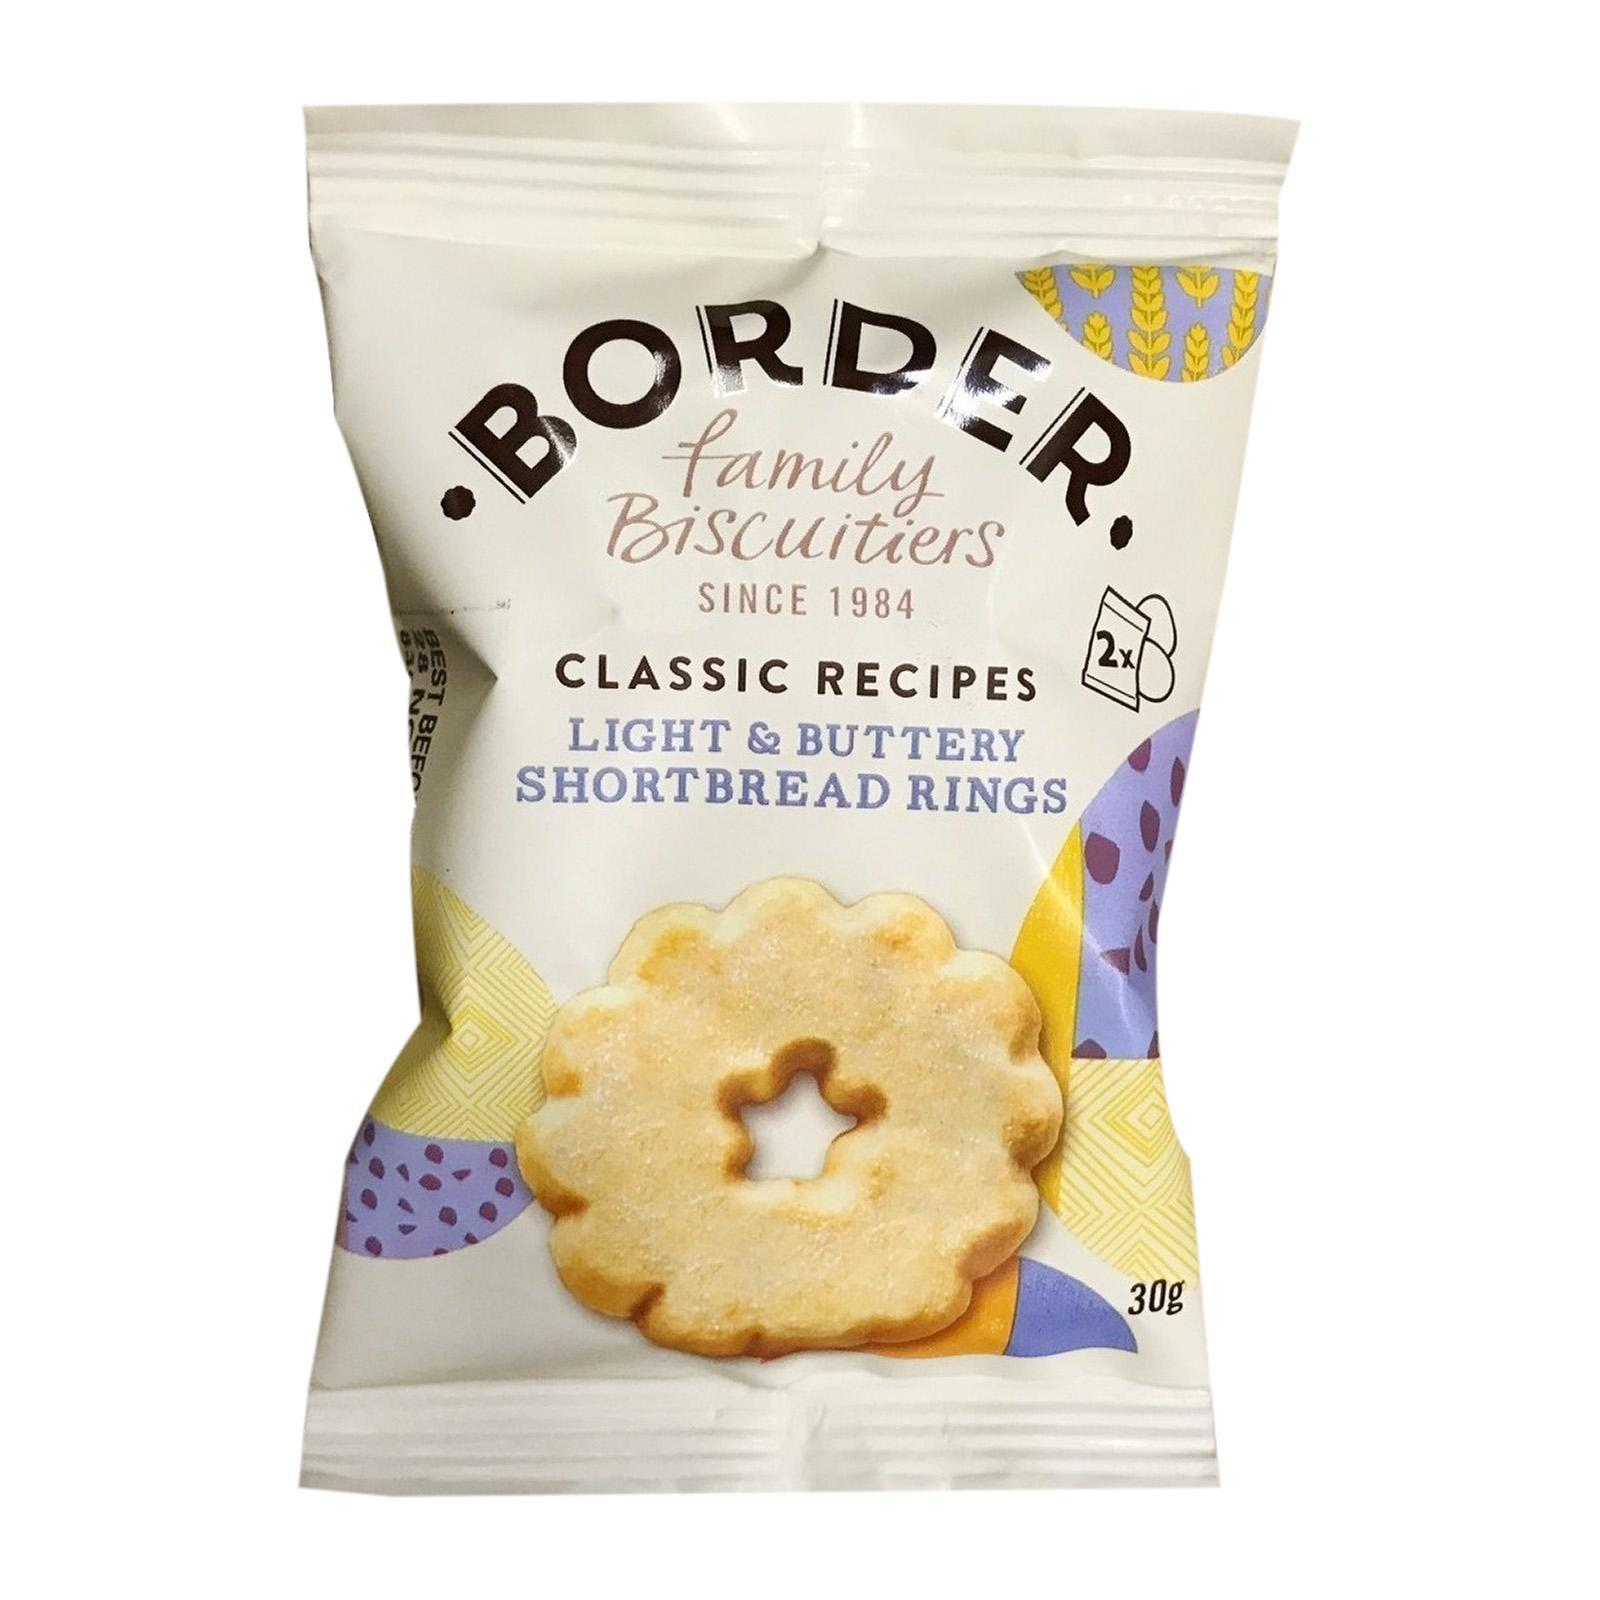 Border Biscuits Light And Buttery Shortbread Rings